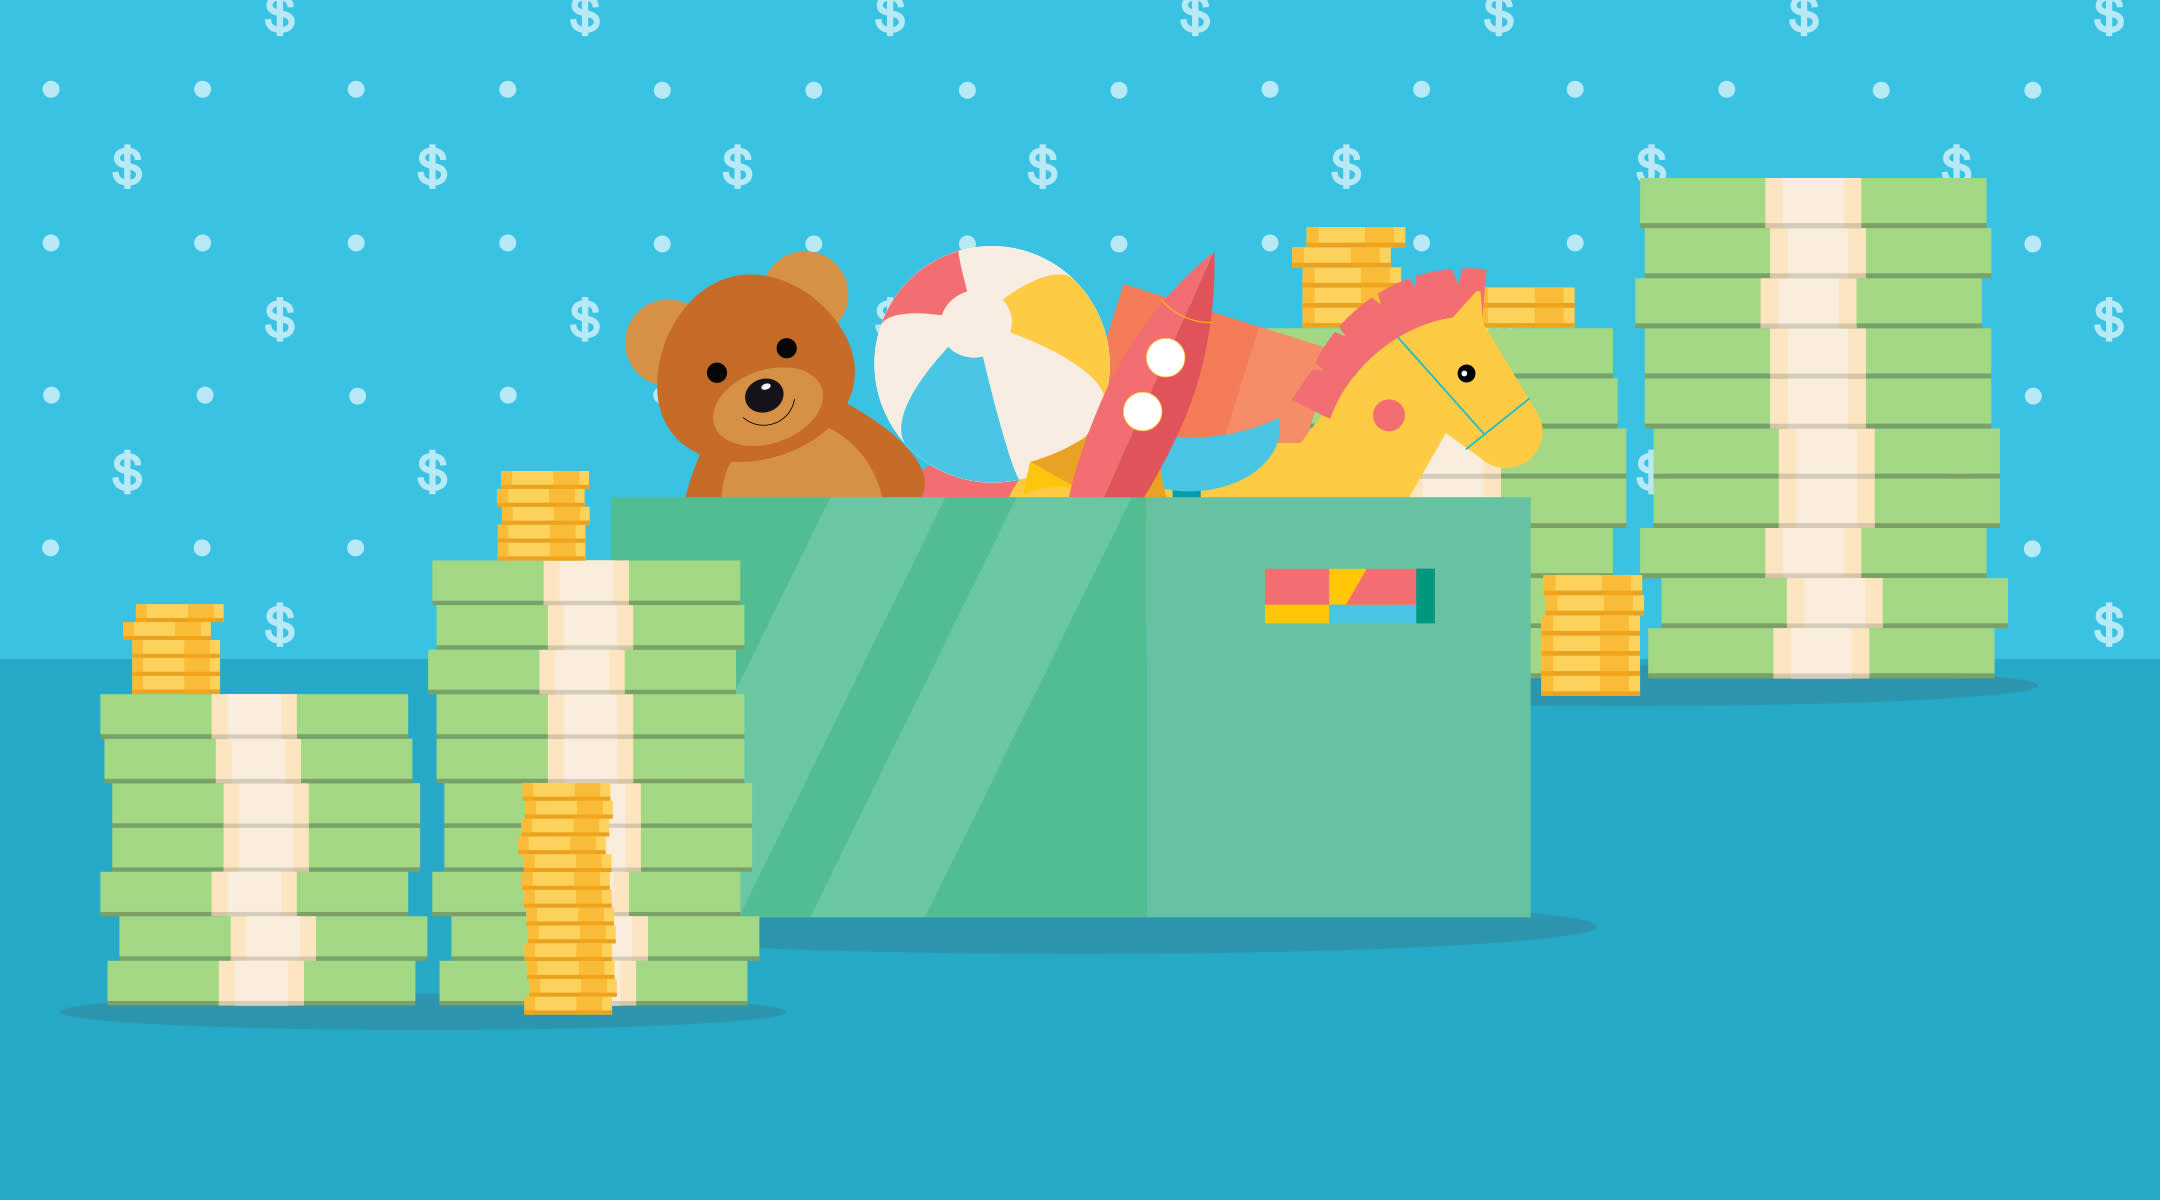 illustration of toy box and stacks of money